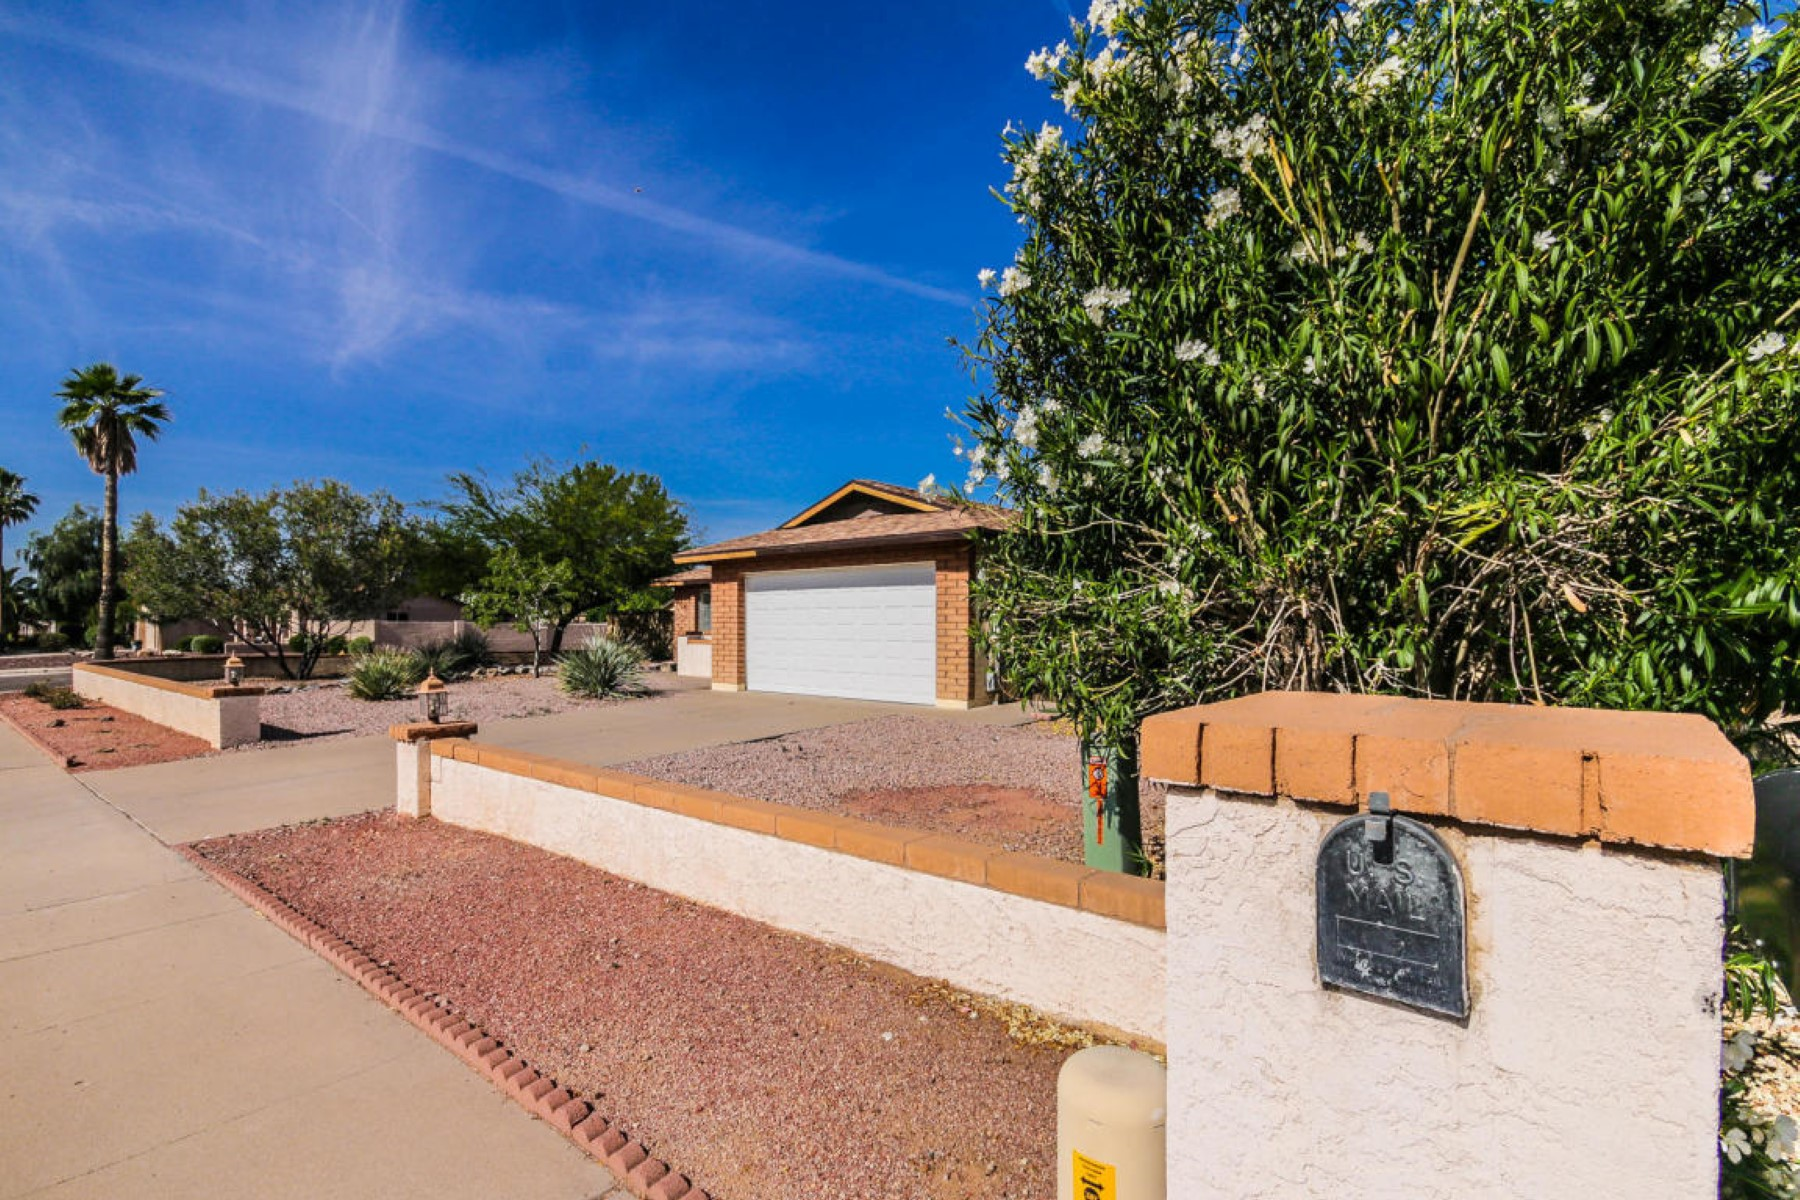 Single Family Home for Sale at Charming home in The Magic zip code of 85254 16602 N 66TH ST Scottsdale, Arizona 85254 United States